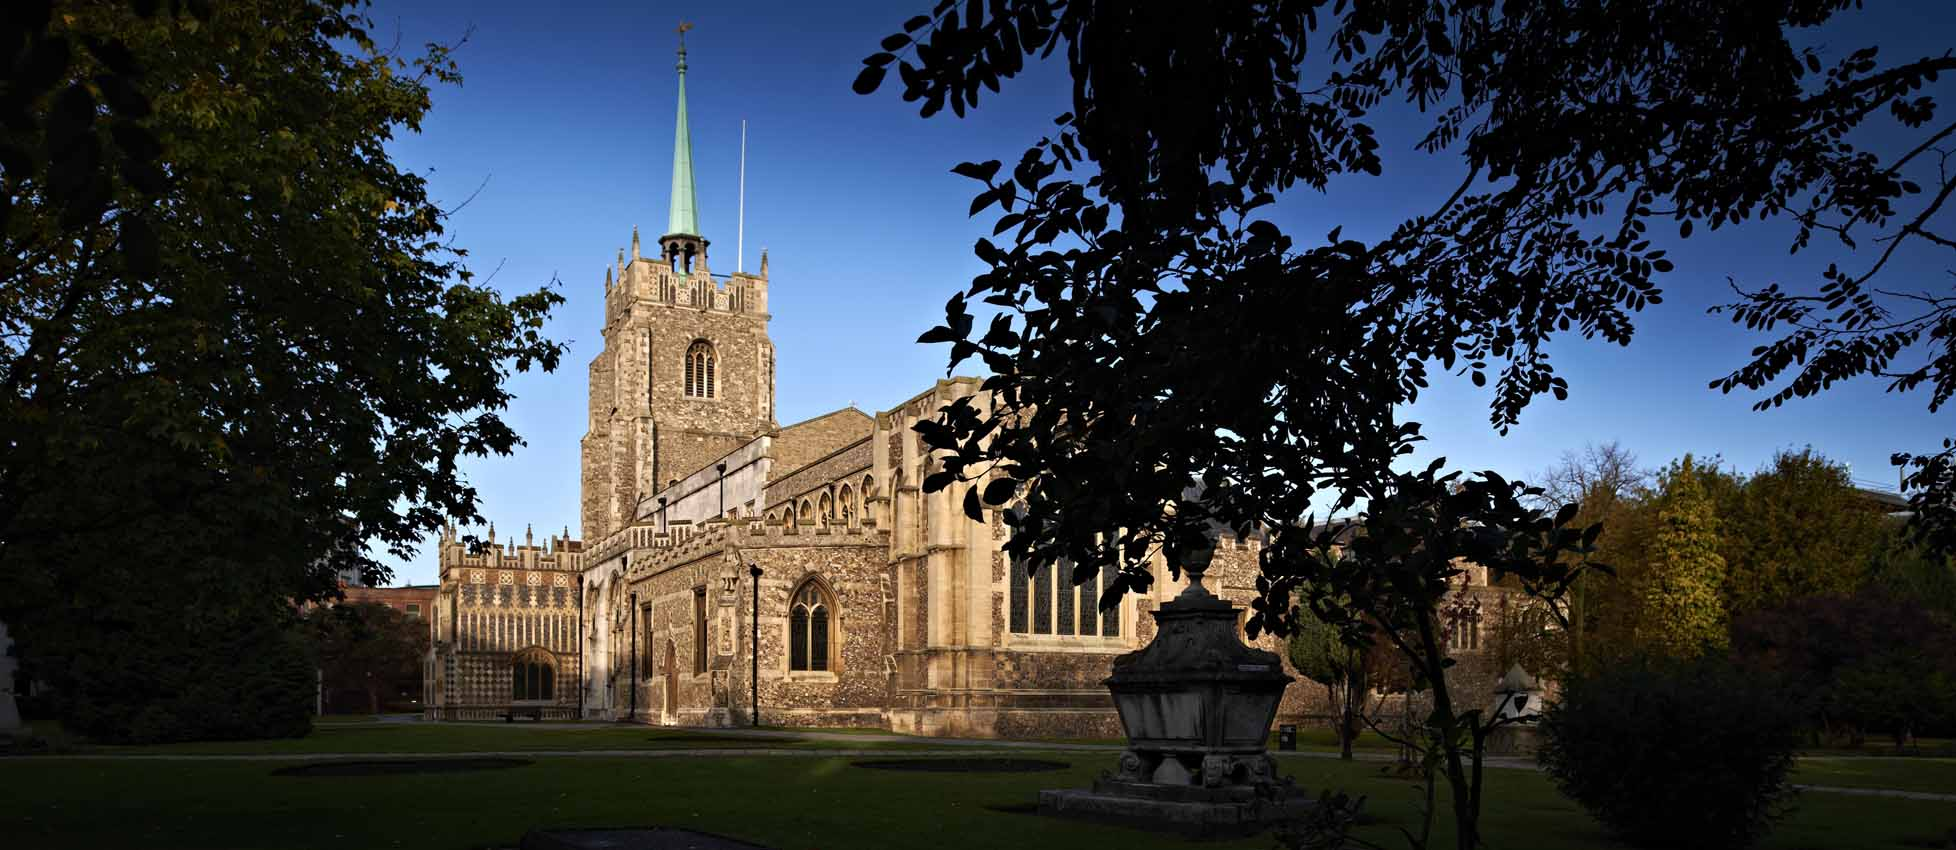 Cathedral_Chelmsford1